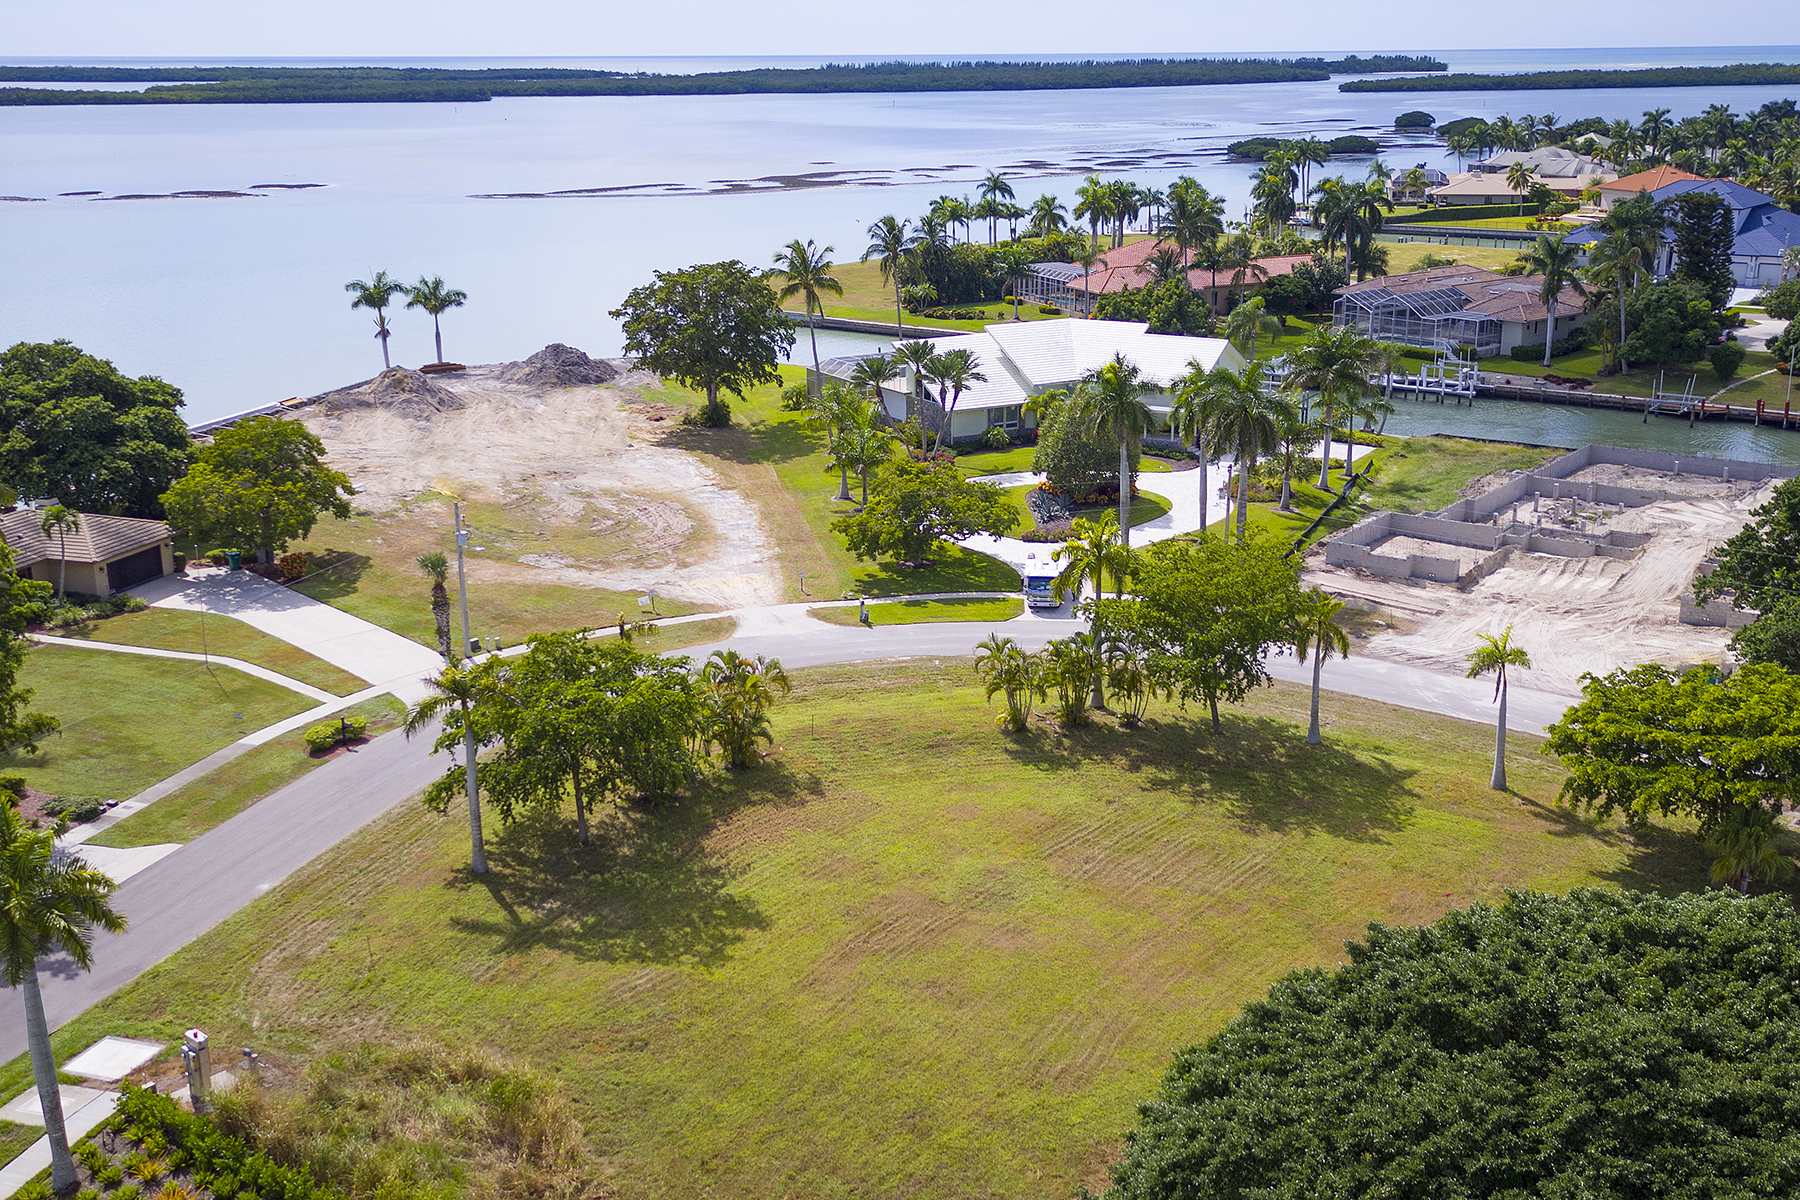 Land for Sale at MARCO ISLAND - CAXAMBAS DRIVE 1060 Caxambas Dr Marco Island, Florida, 34145 United States